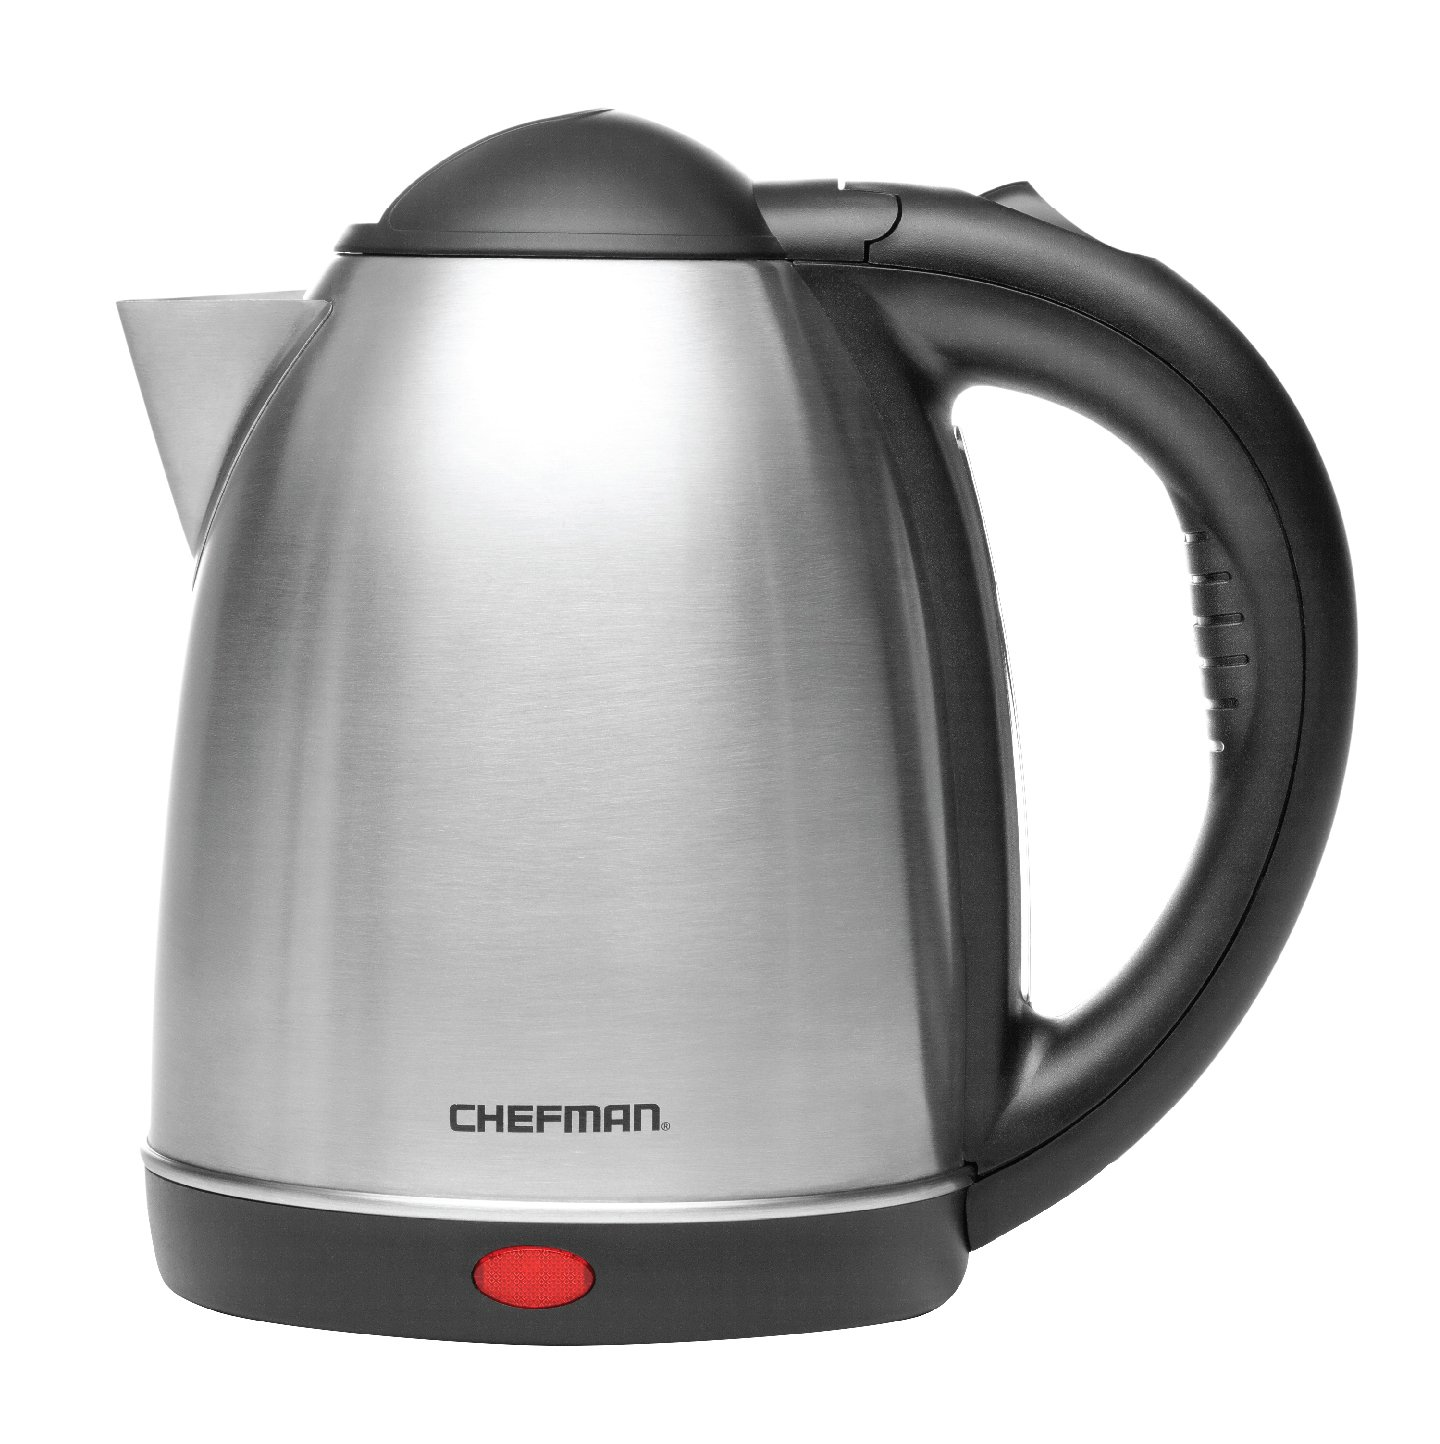 Chefman Stainless Steel Electric Kettle Quickly Heats Water Separates from Base for Cordless Pouring, Auto Shut Off Boil Dry Protection, BPA-Free Interior & Cool-Touch Handle, 1.7 Liter/1.8 Quart by Chefman